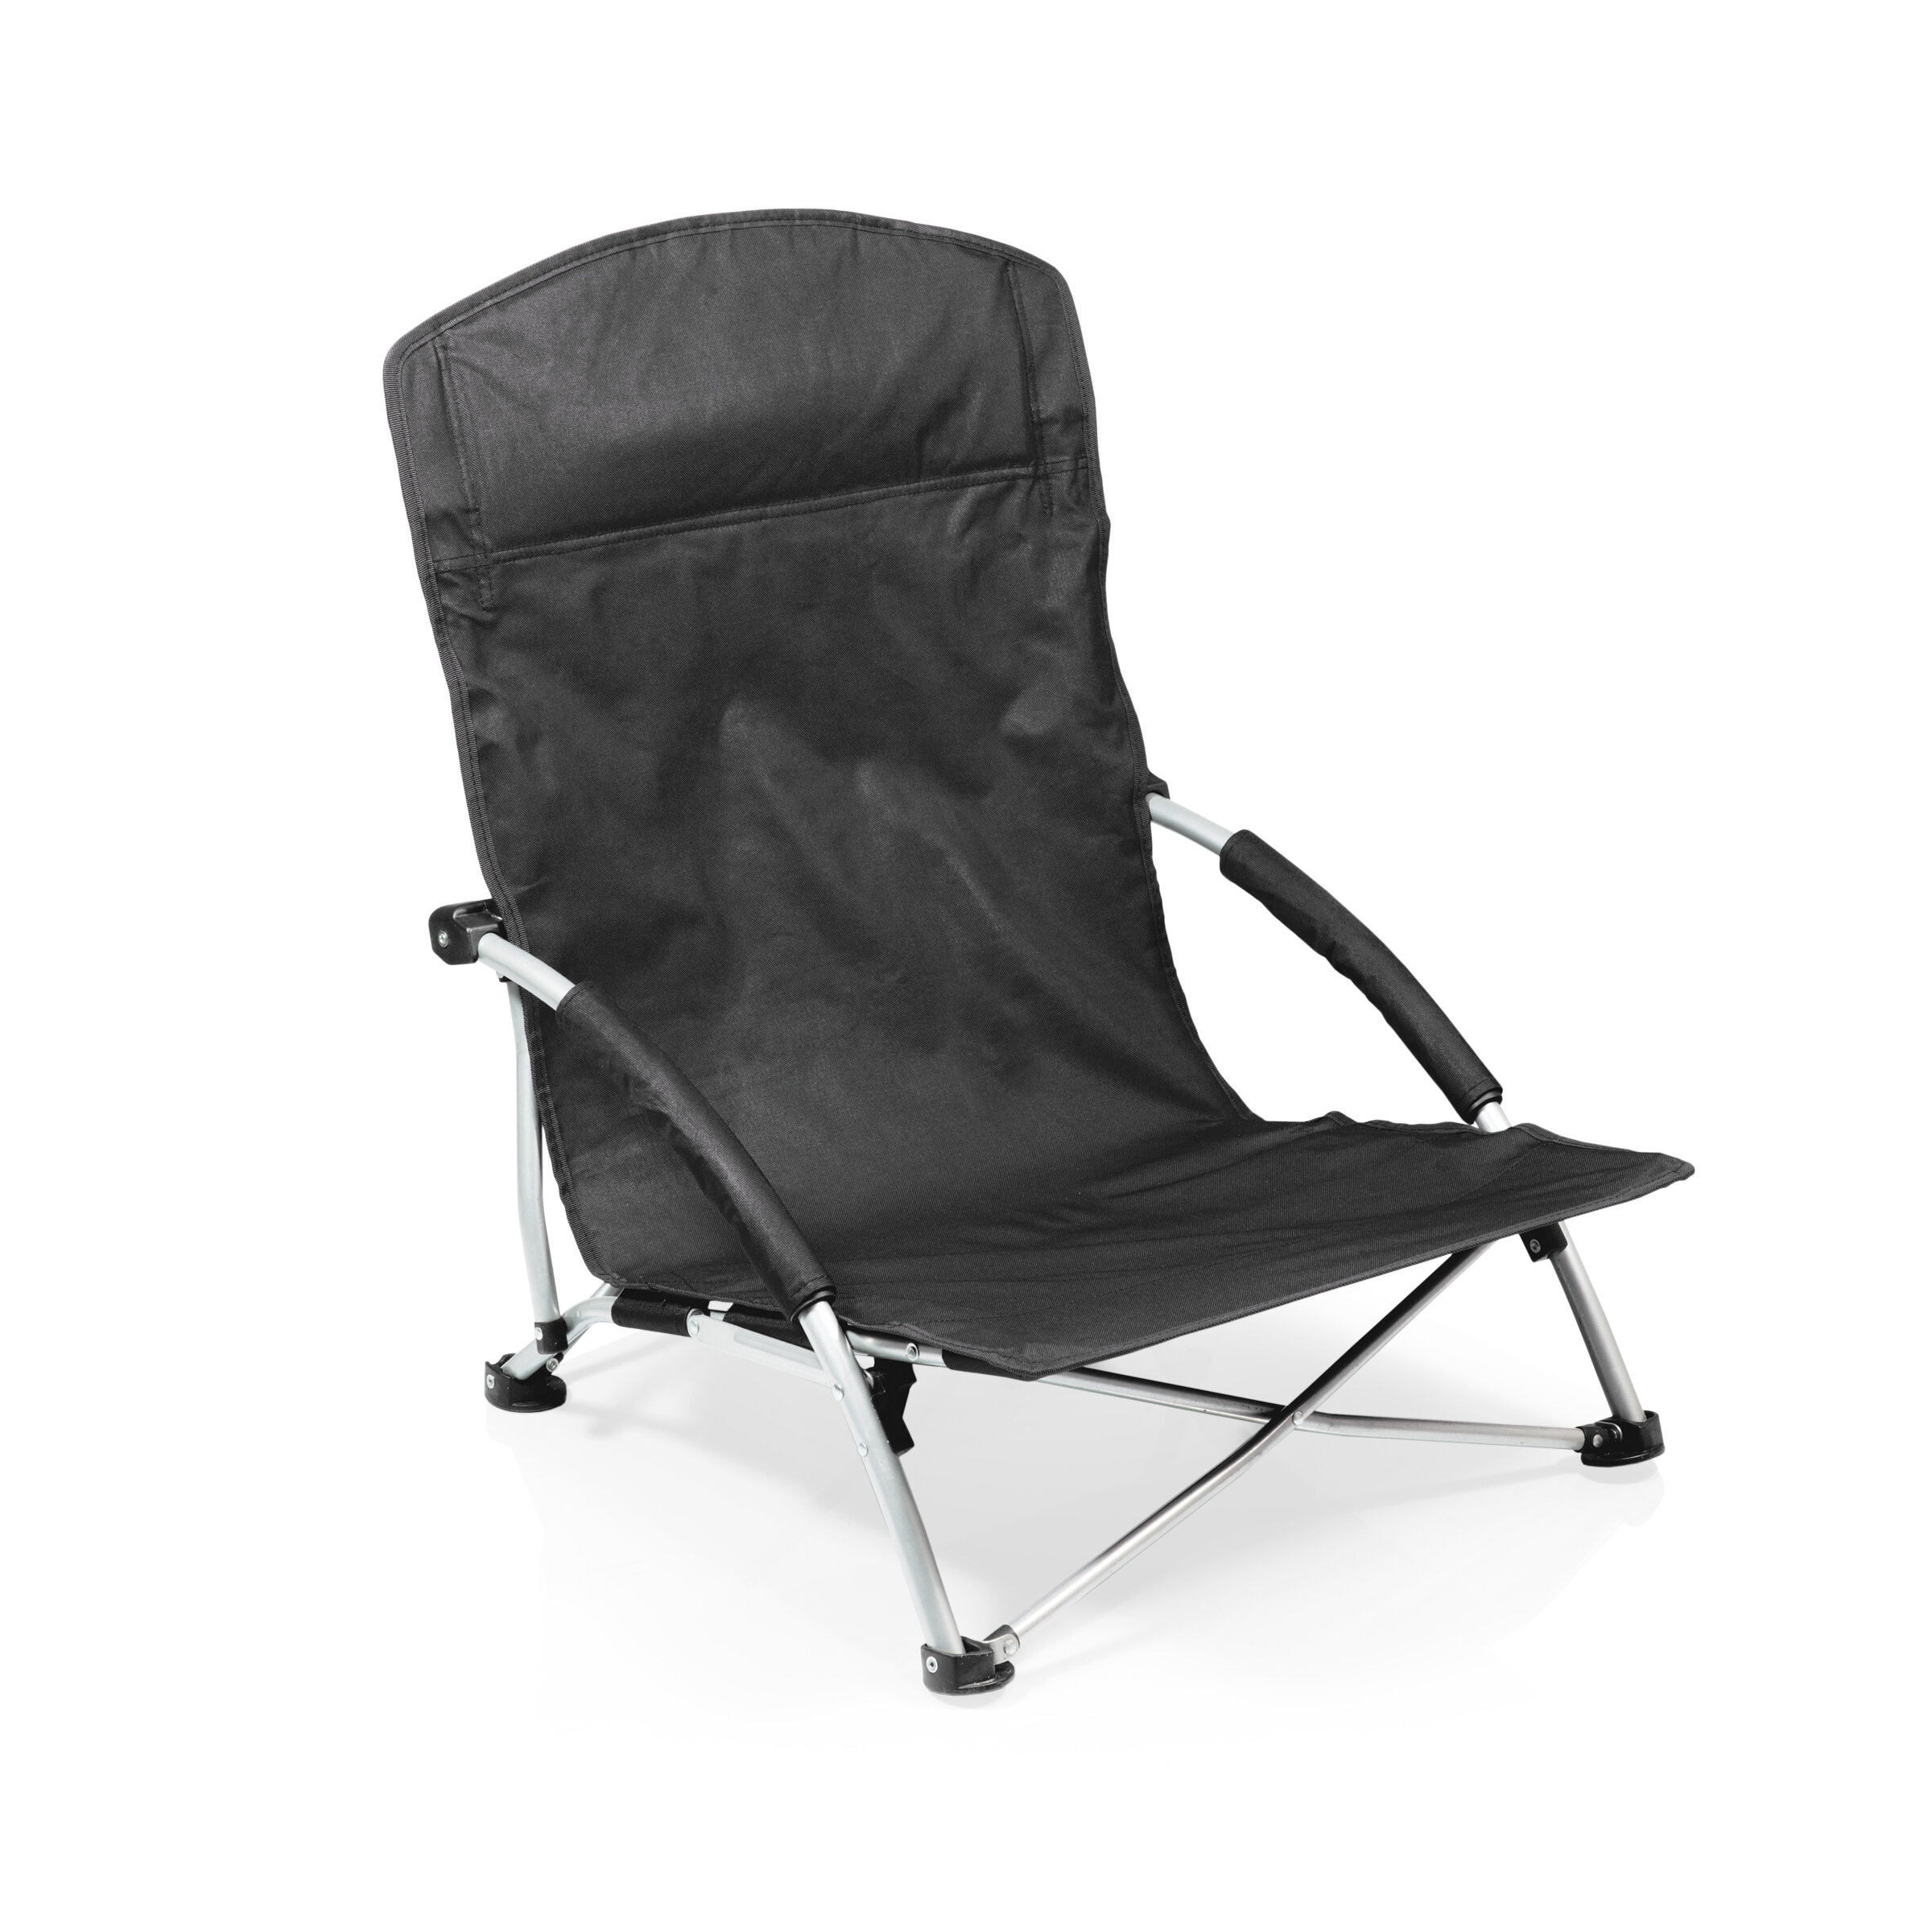 Oniva Tranquility Folding Beach Chair